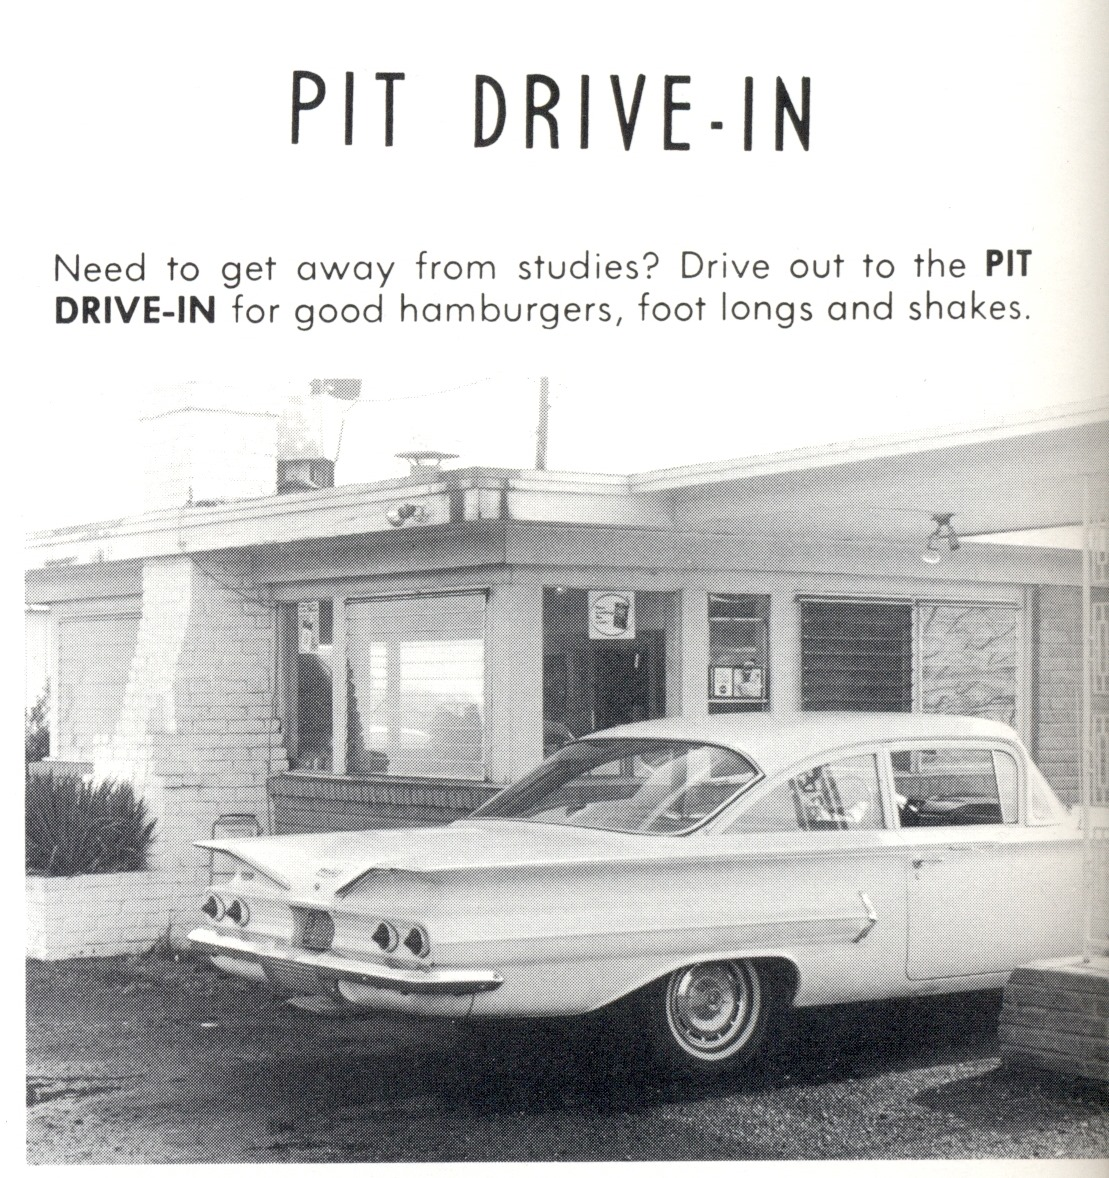 The old Pit Drive In